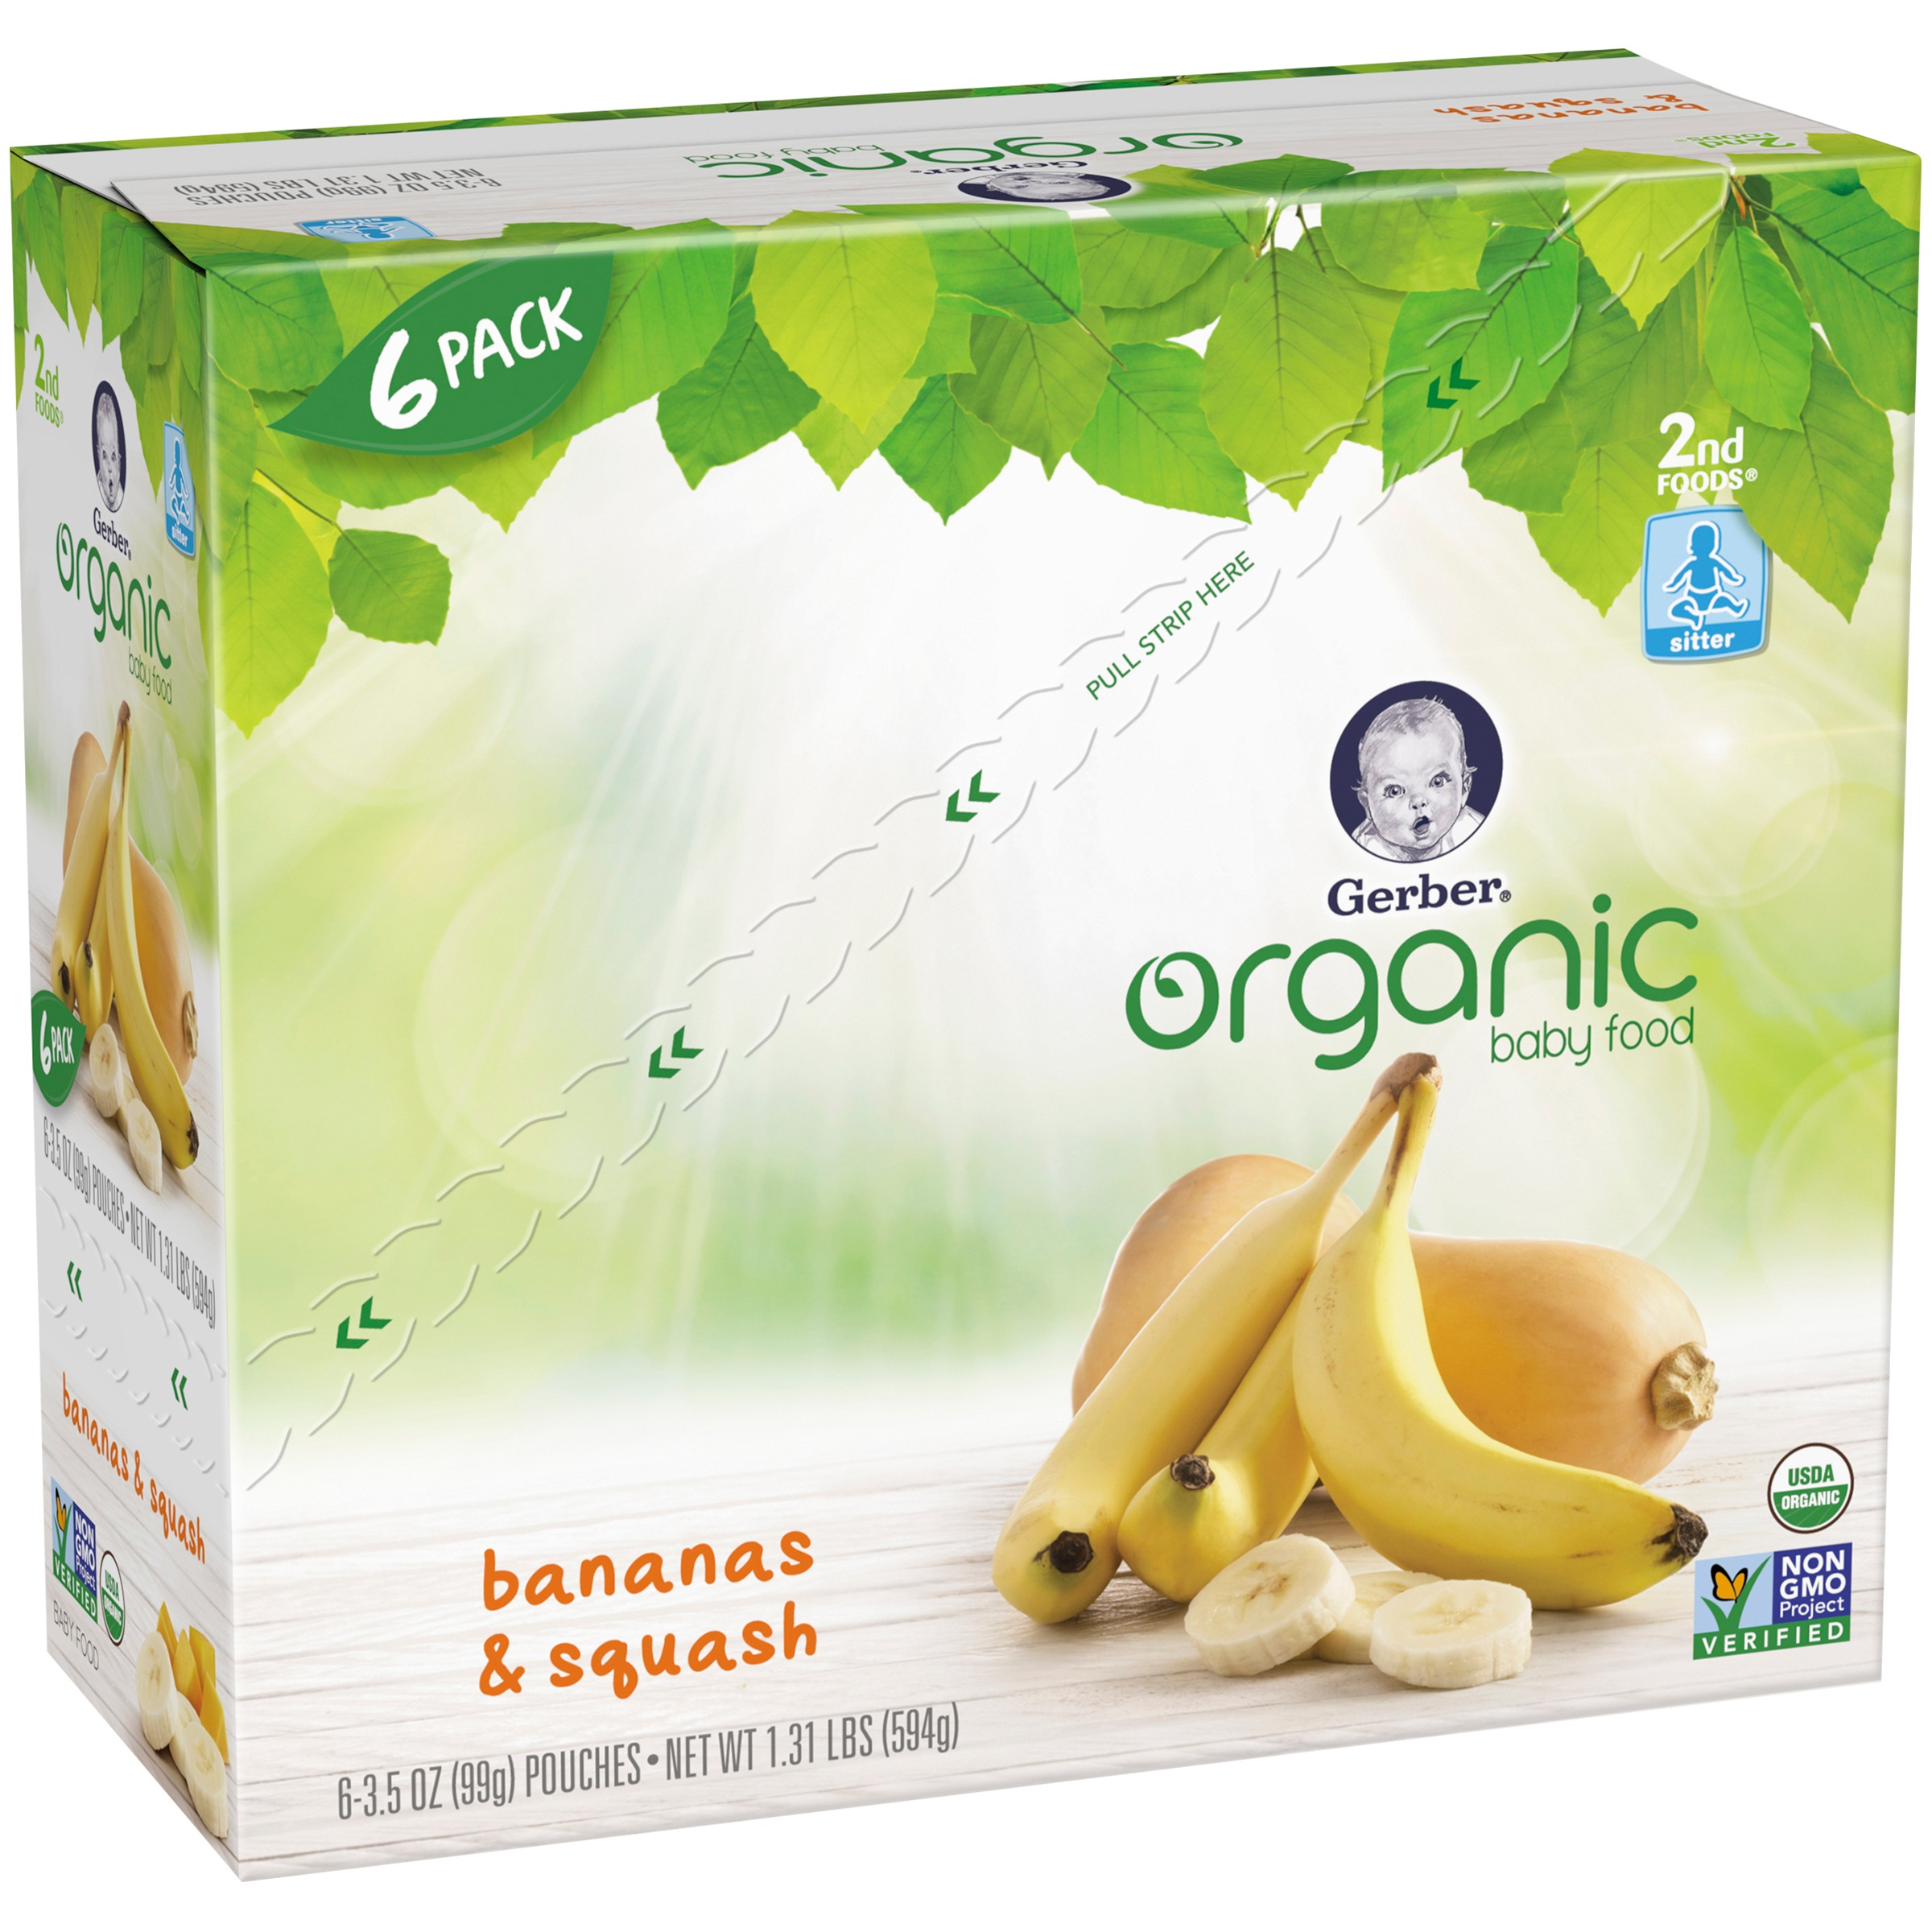 Gerber Organic 2nd Foods Baby Food, Banana Squash, 3.5 oz Pouch (Pack of 6)